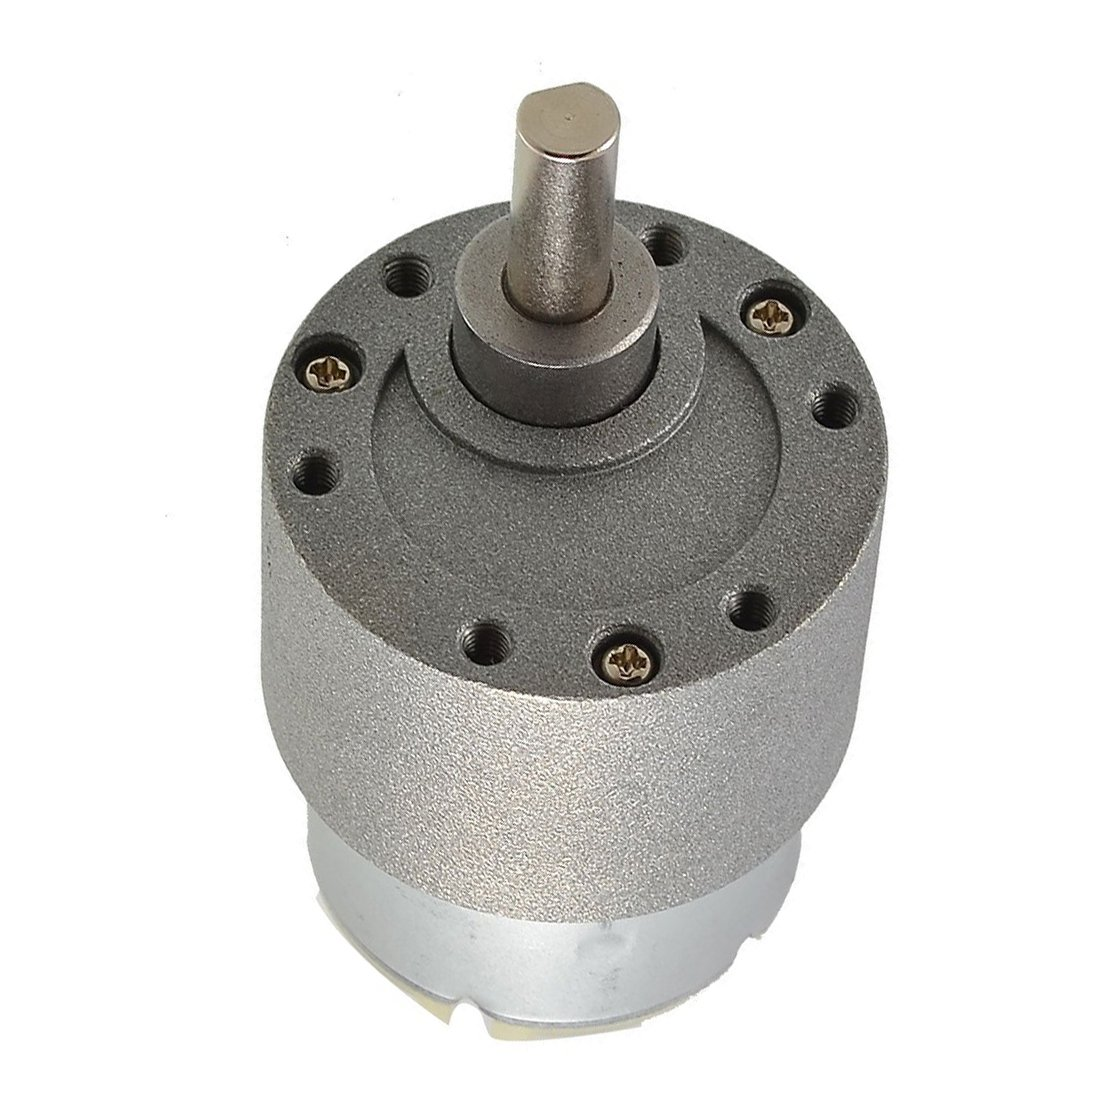 Yohii DC 6V 37GB 50RPM 70mA Electric Gearbox Motor Component Geared Motor